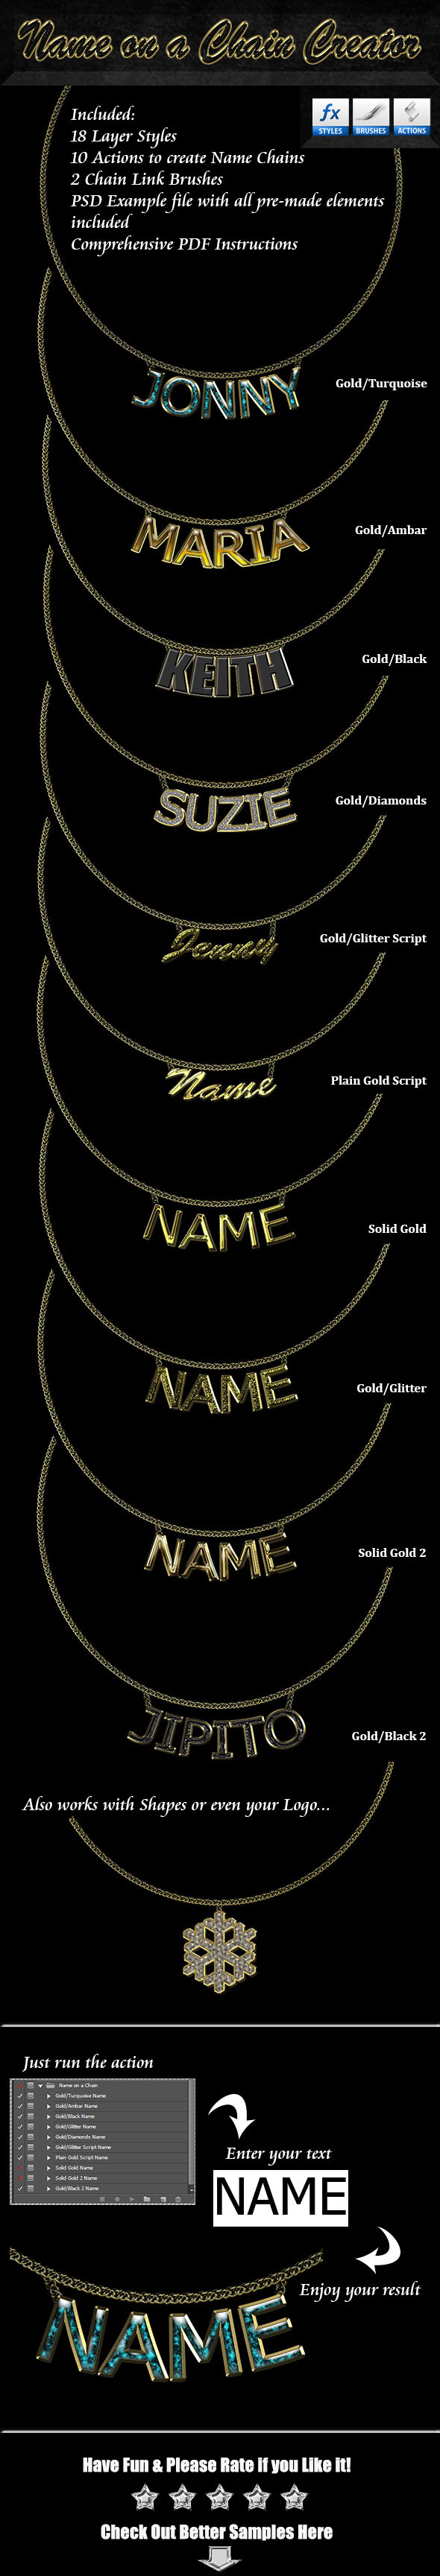 GraphicRiver Name on a Chain Creator 9447267